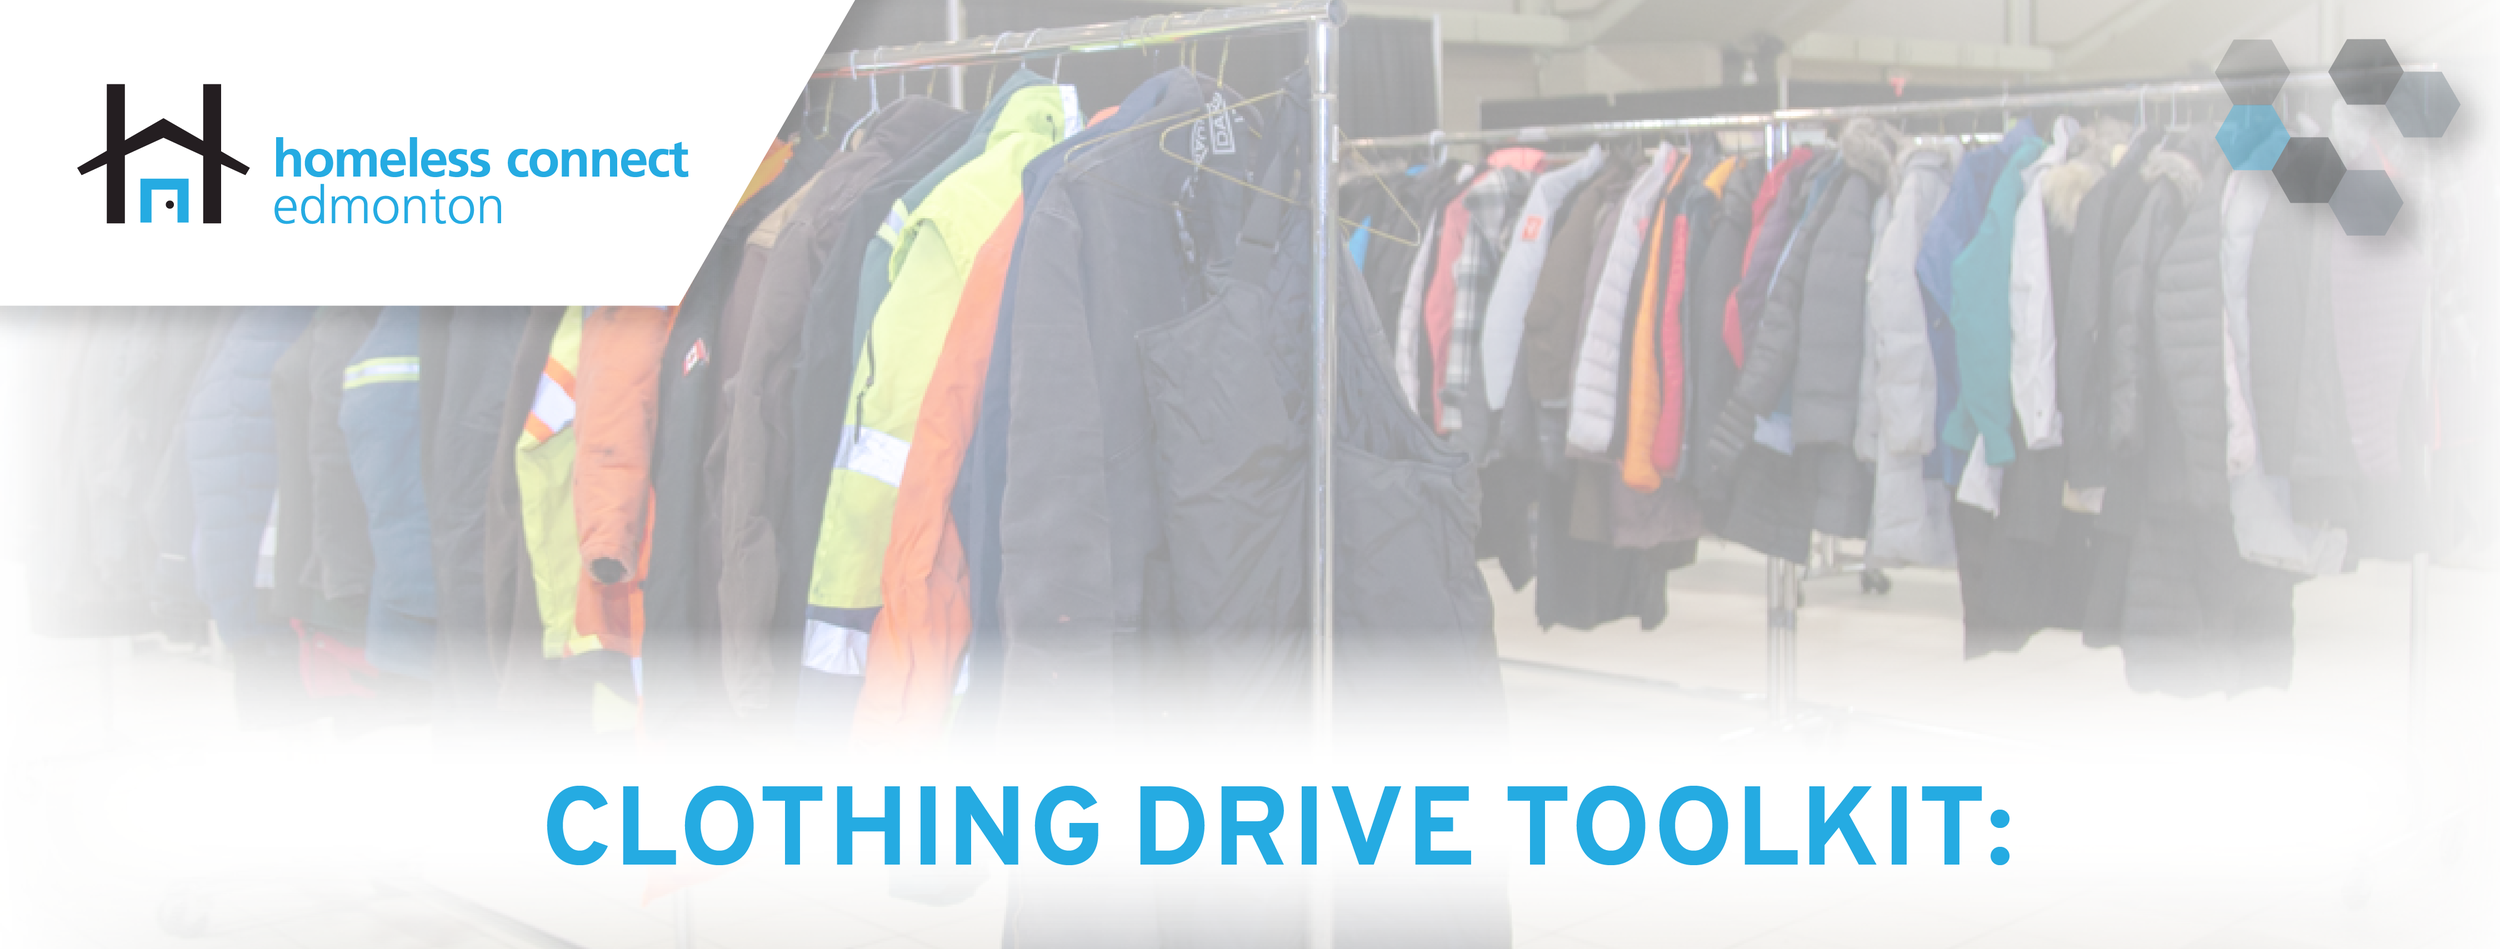 Click   HERE   for everything you need to organize a clothing drive at your work or in your community for Homeless Connect.